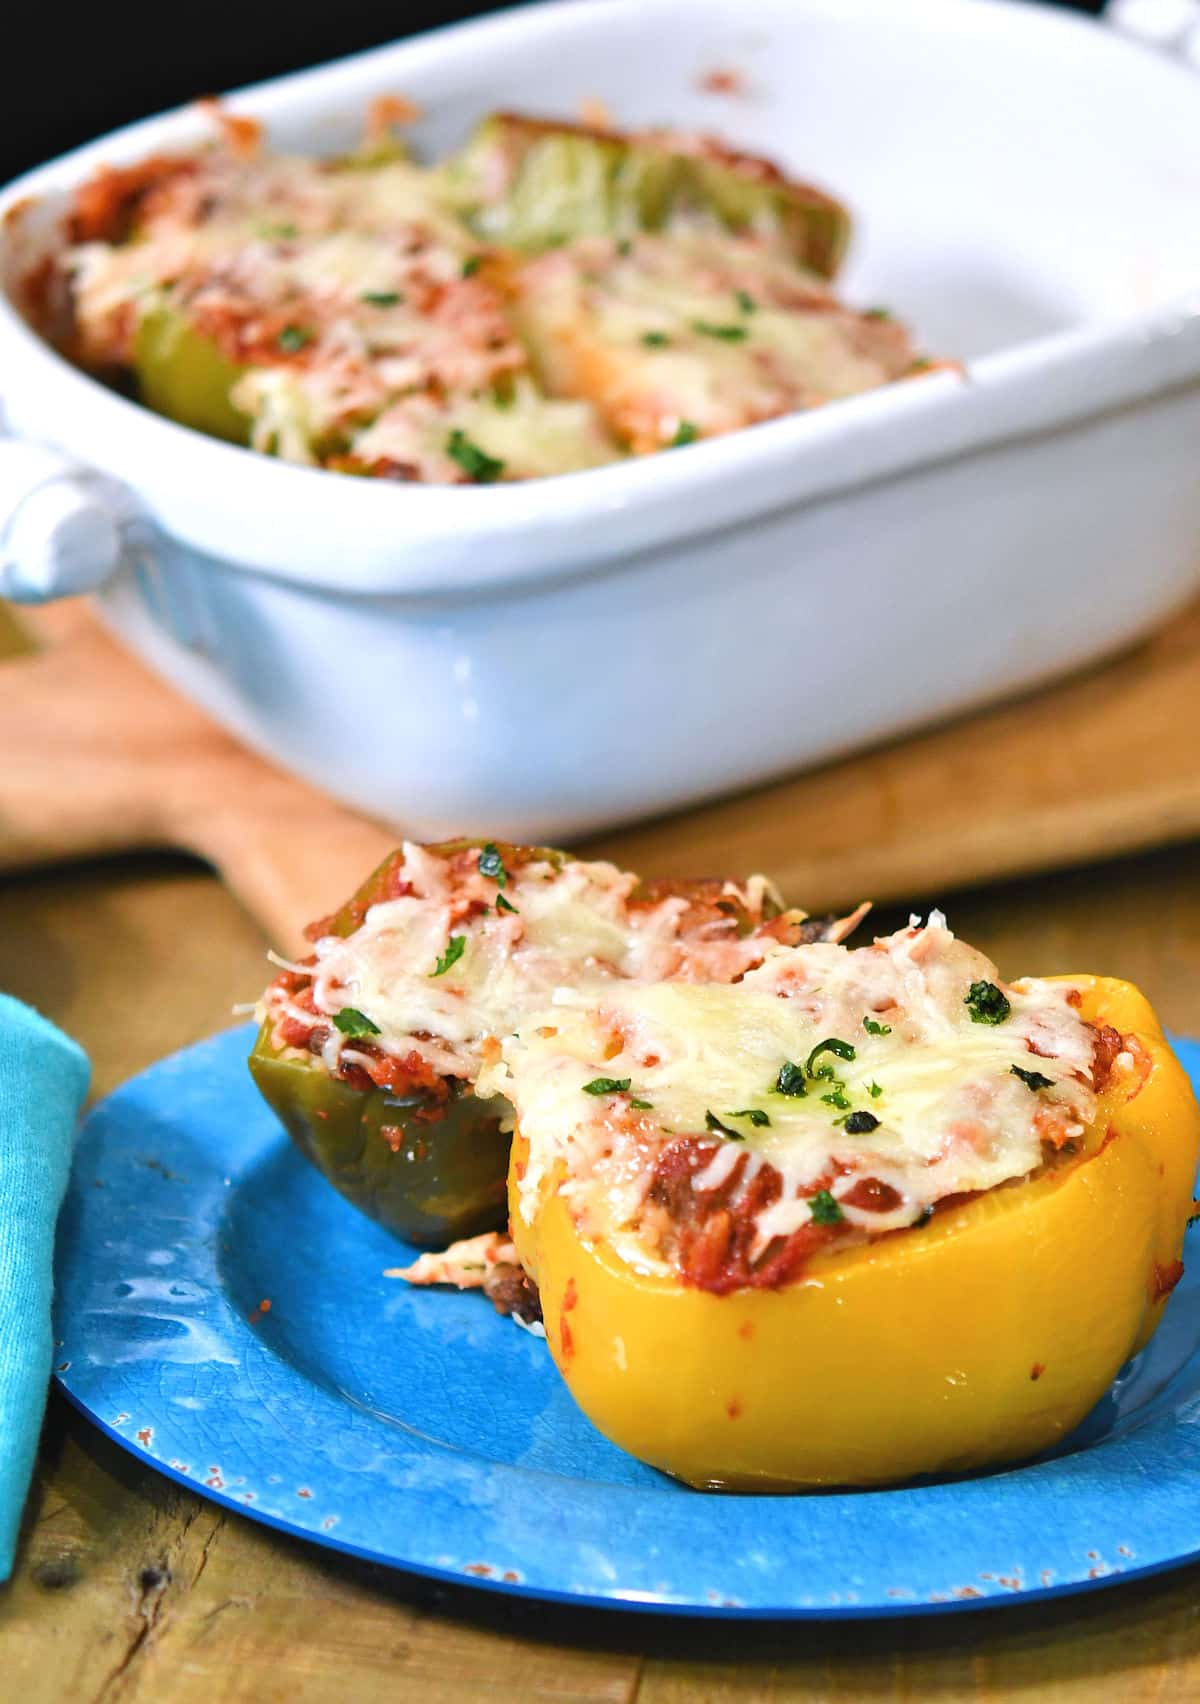 24Bite: Dirty Rice Stuffed Bell Peppers recipe by Christian Guzman